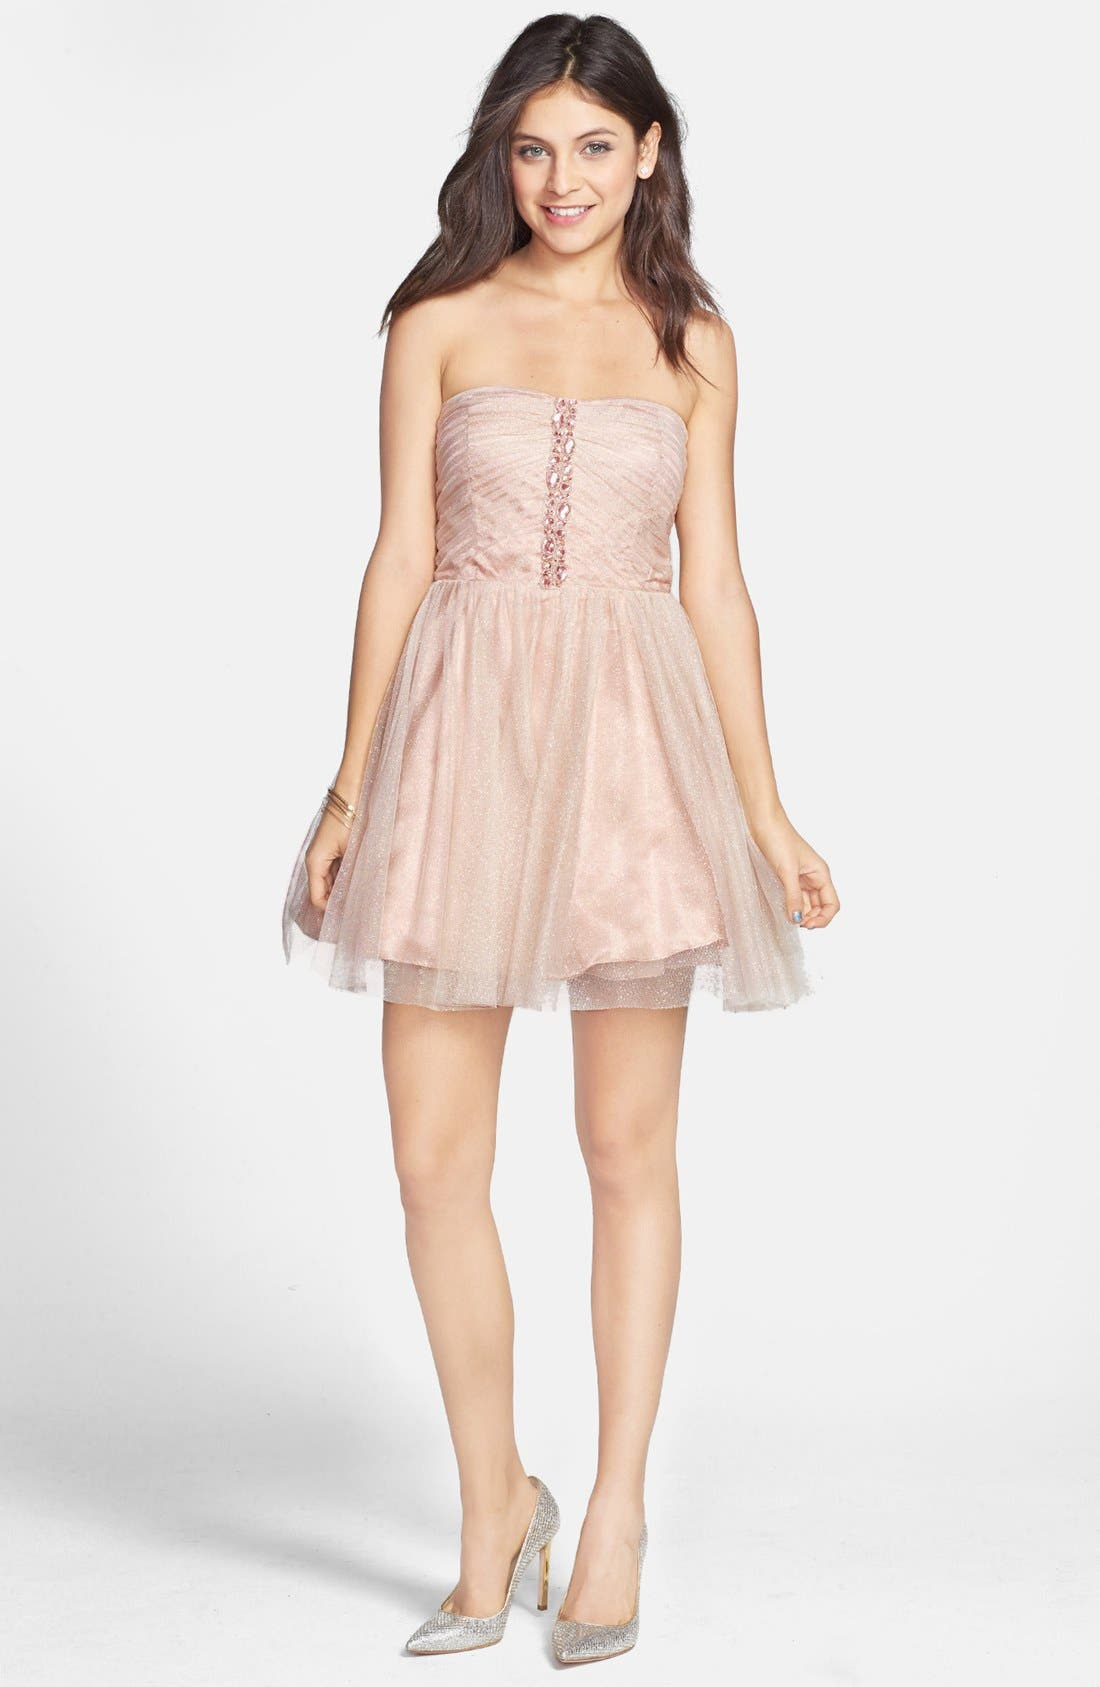 JUMP APPAREL Strapless Dress, Main, color, 650